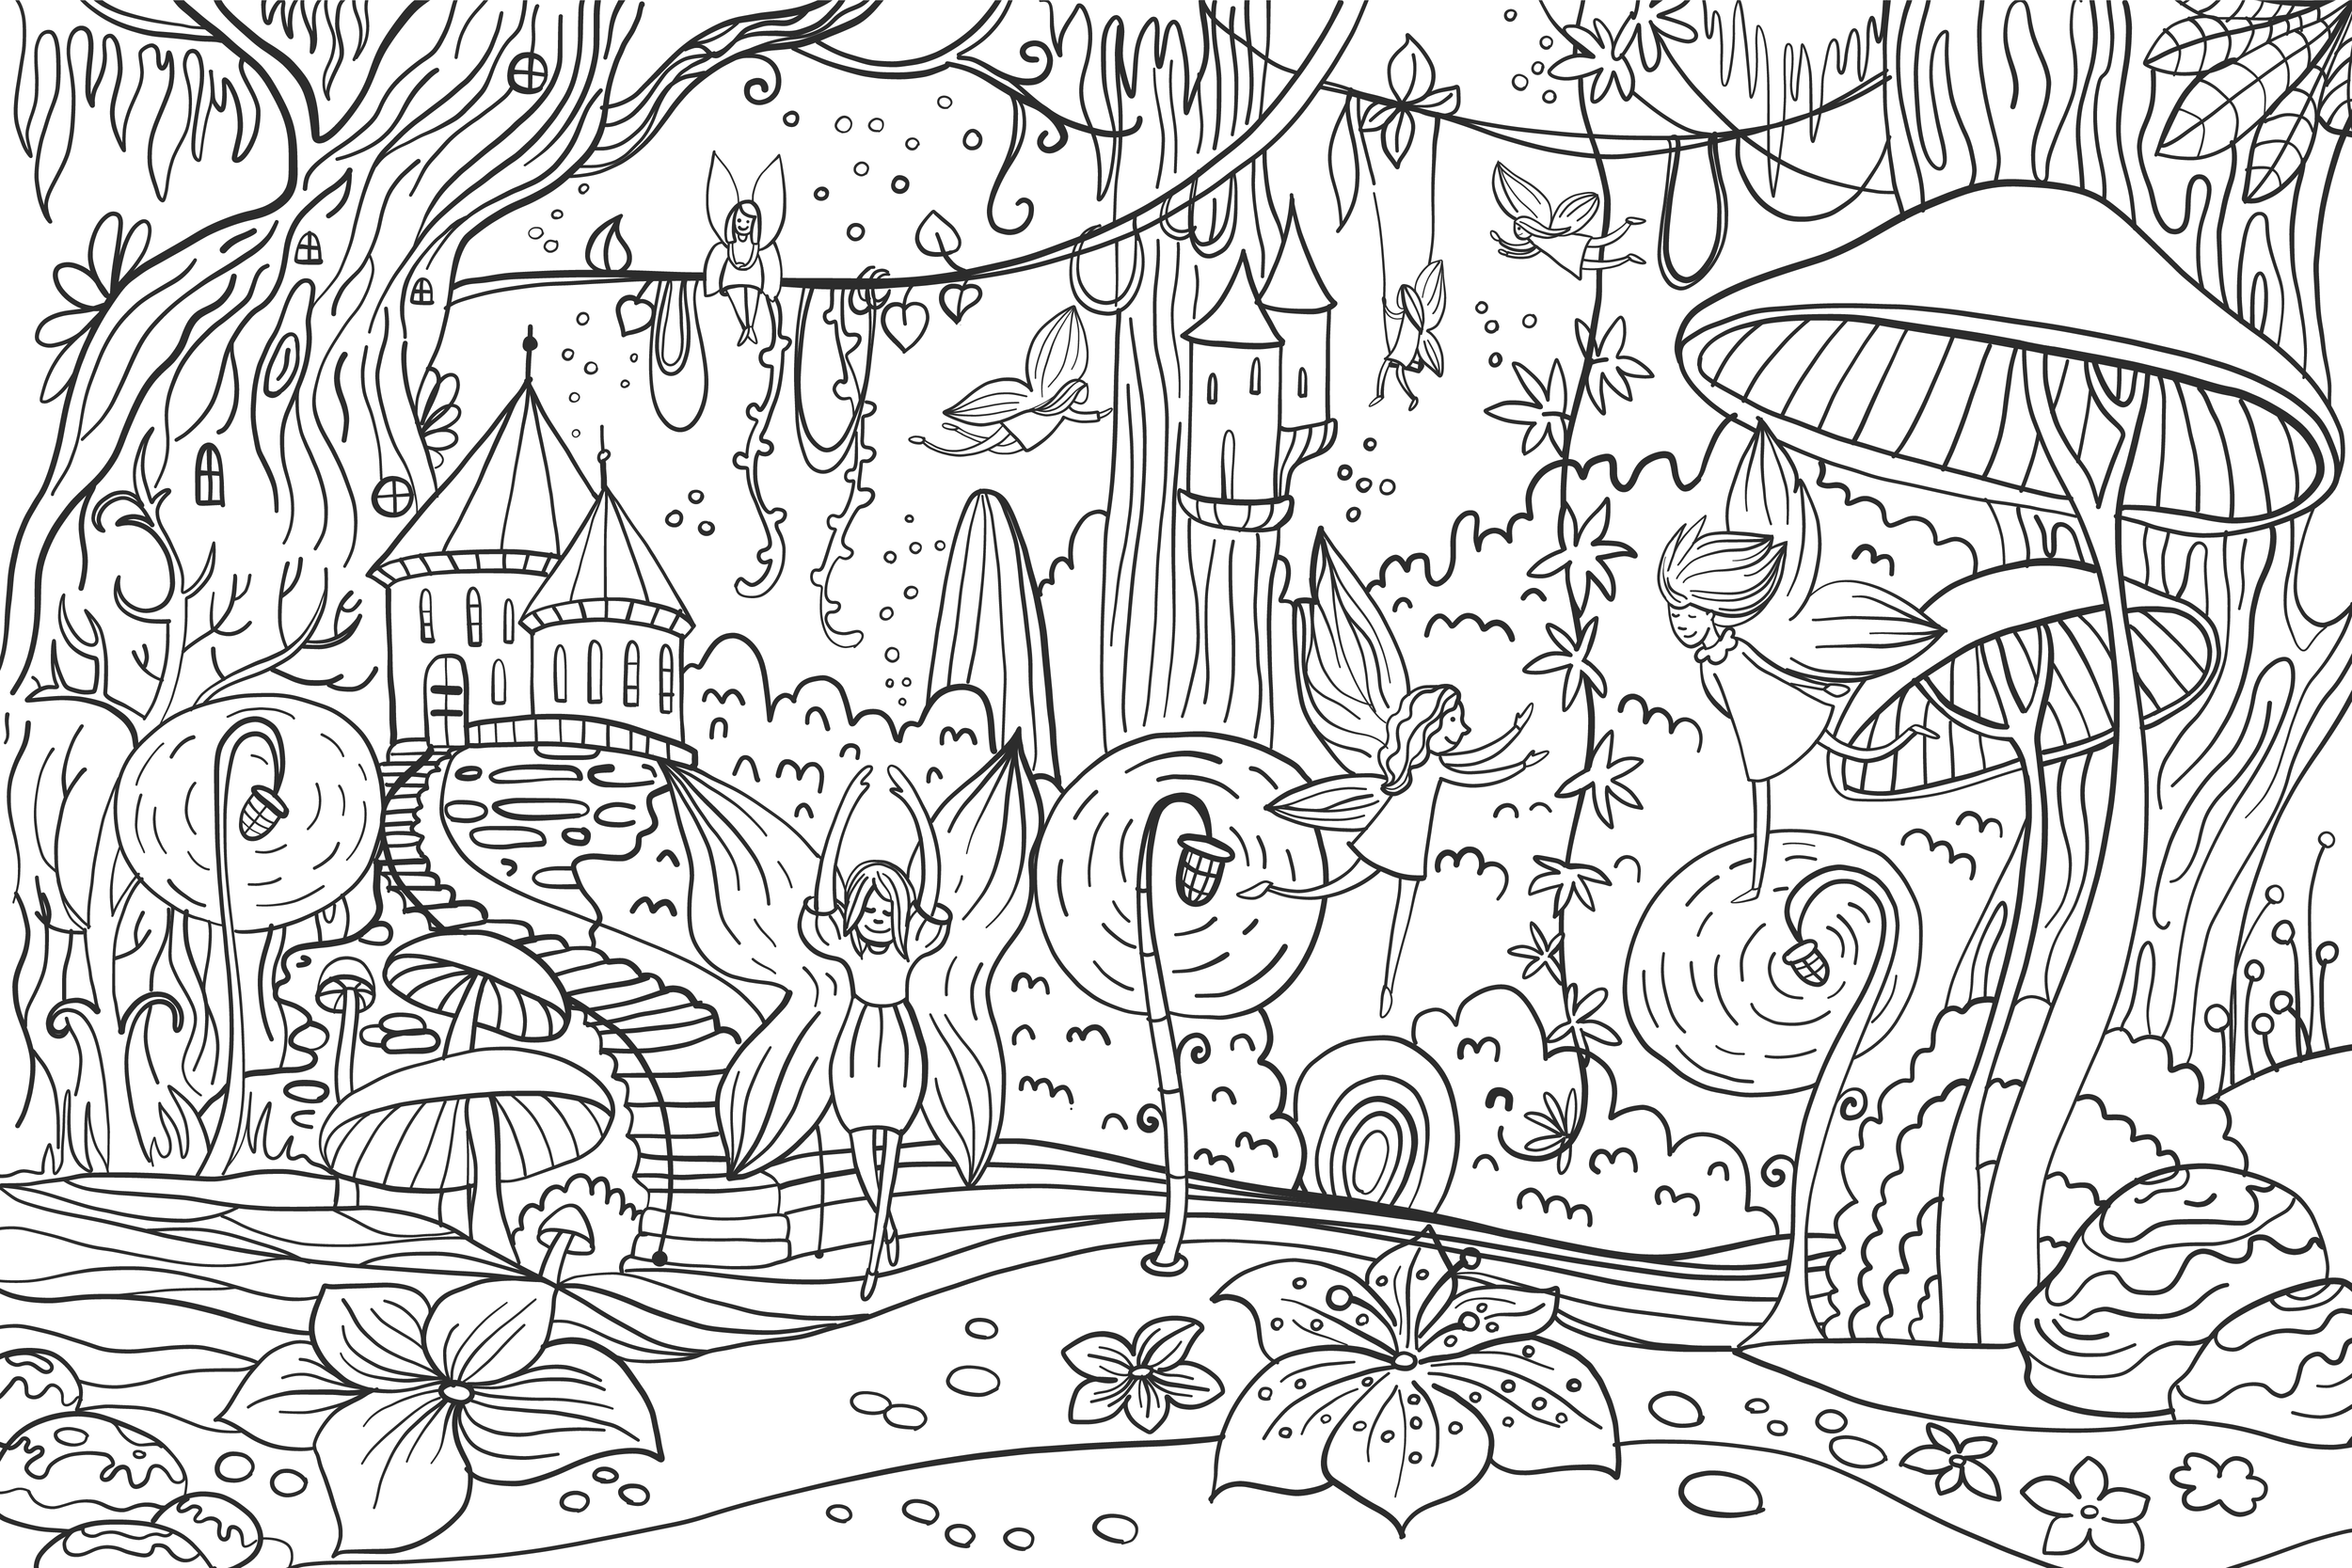 coloring fairy forest flatt-01.png